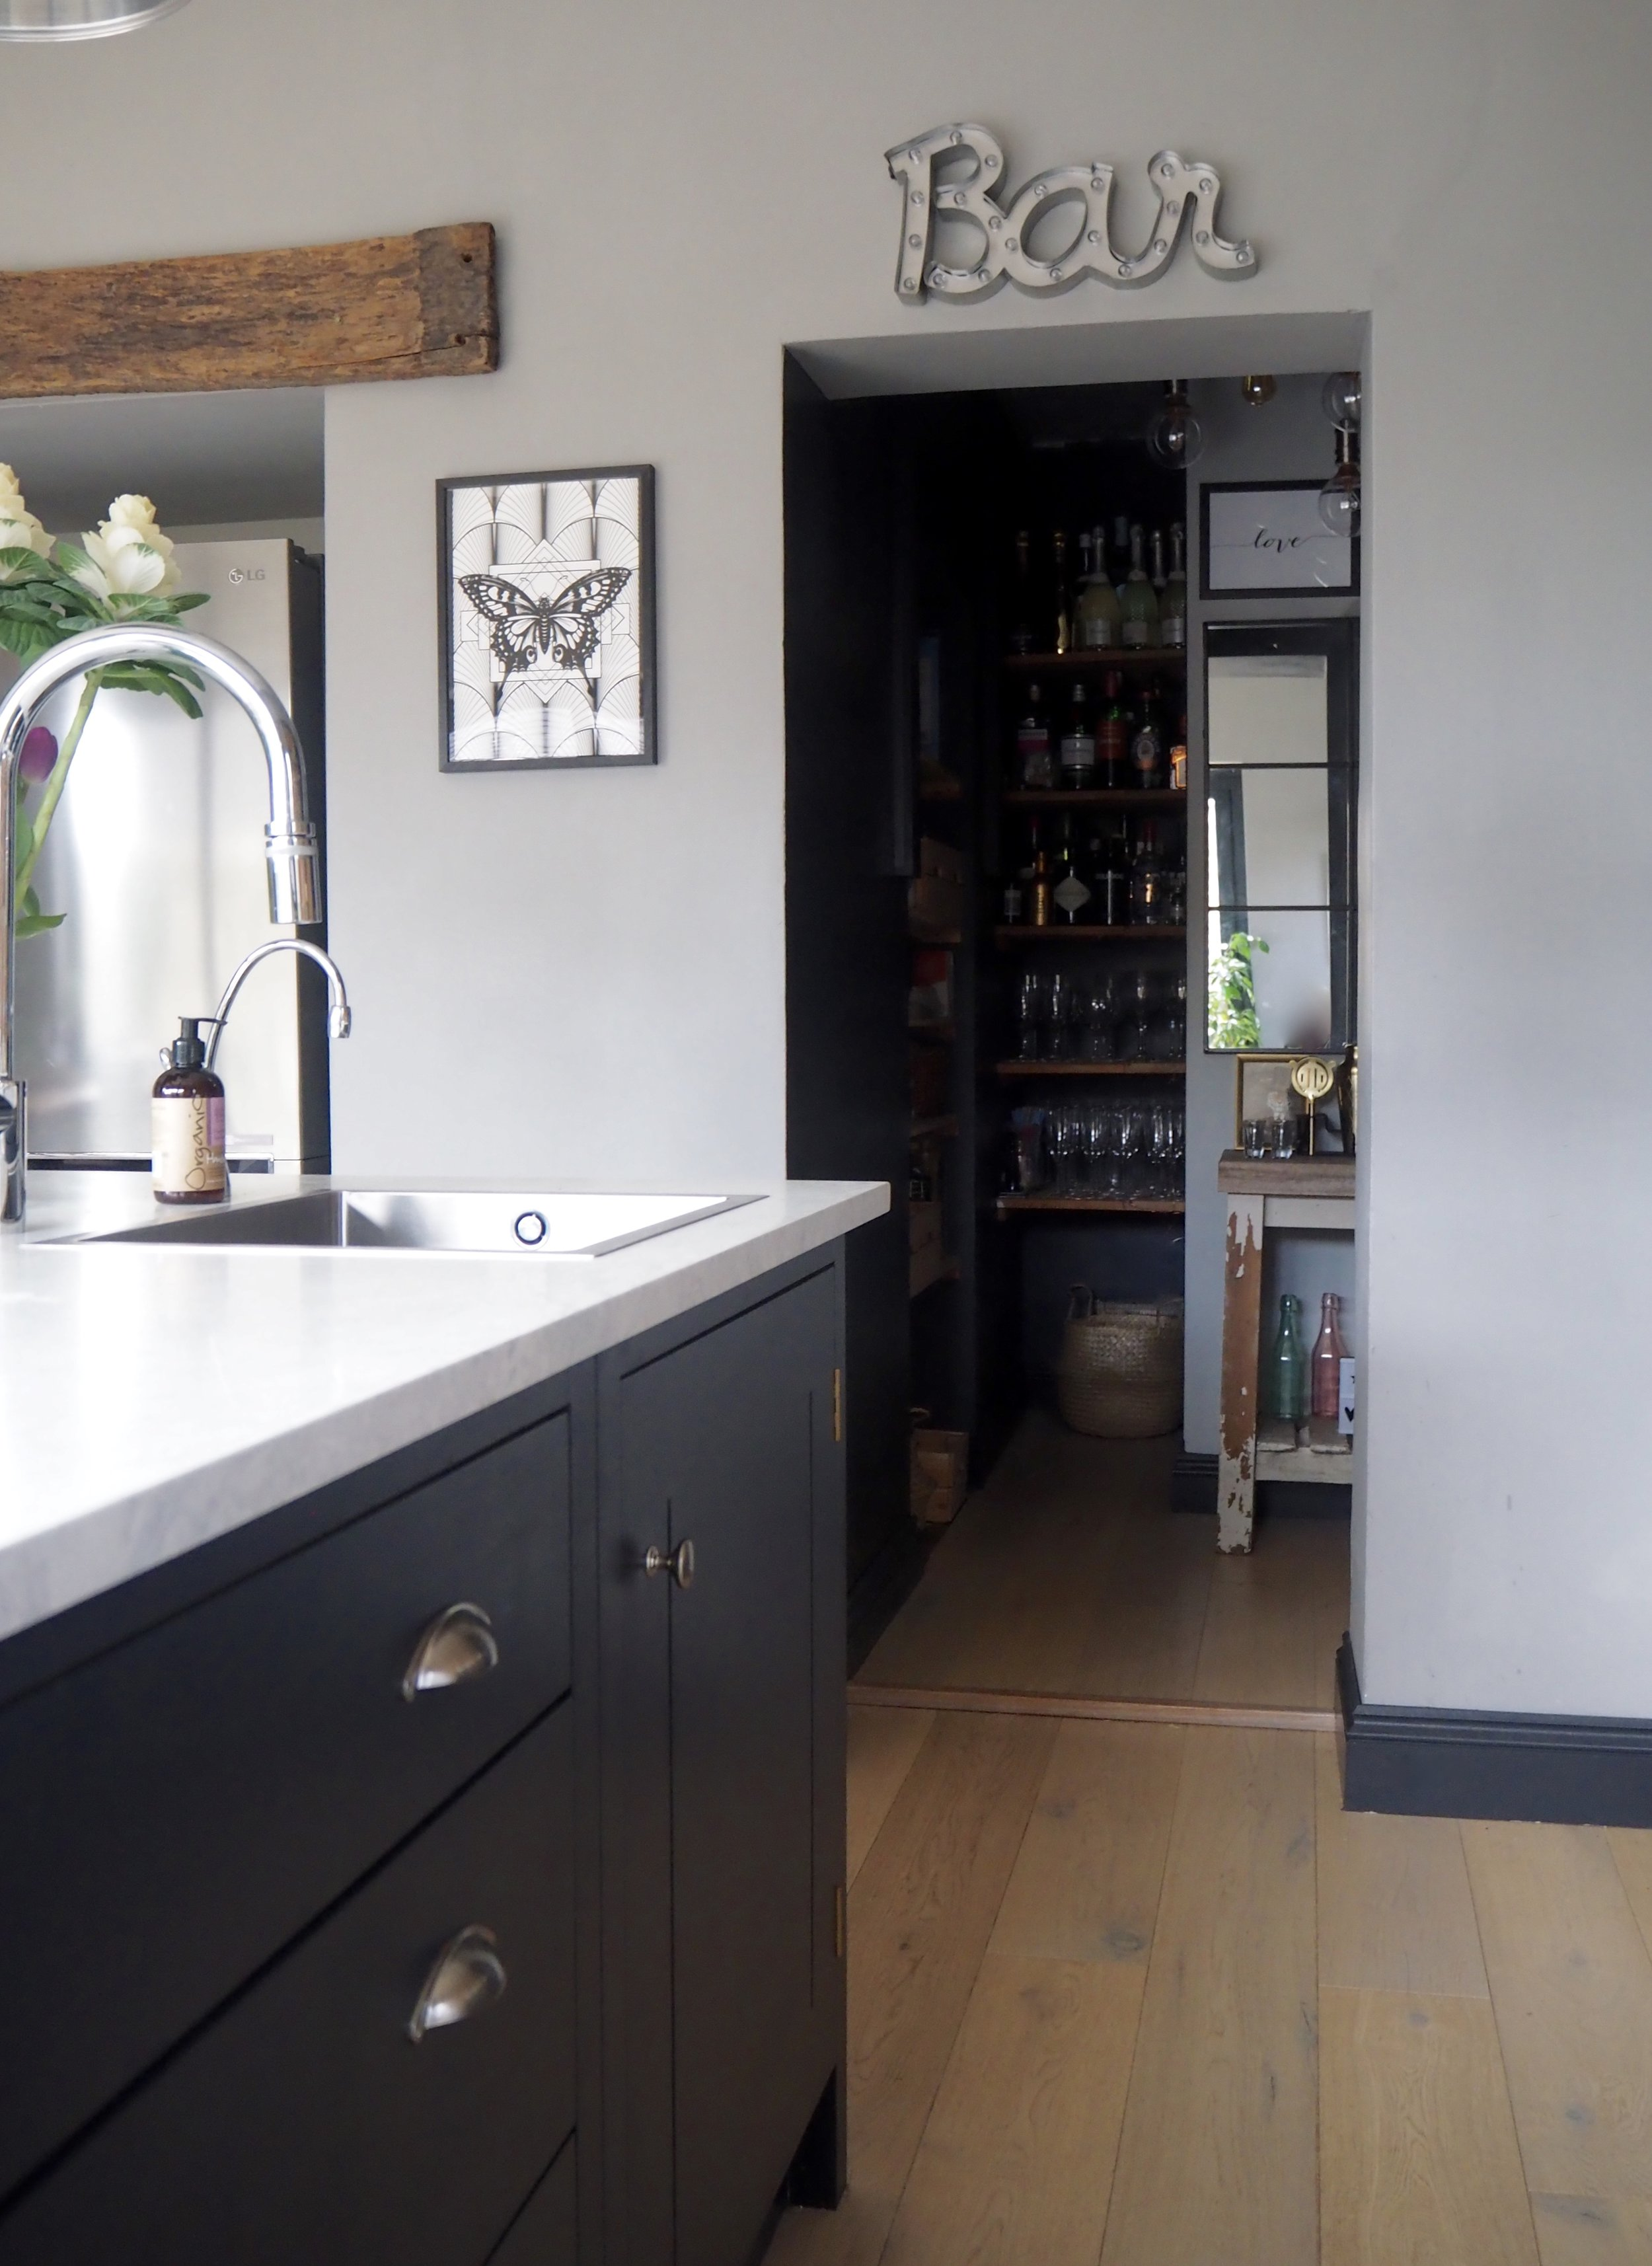 The wall of 'Railings' as you go into the pantry is the same colour as the kitchen units and makes the rooms flow into each other as well as adding a statement against the pale grey walls at the entrance......